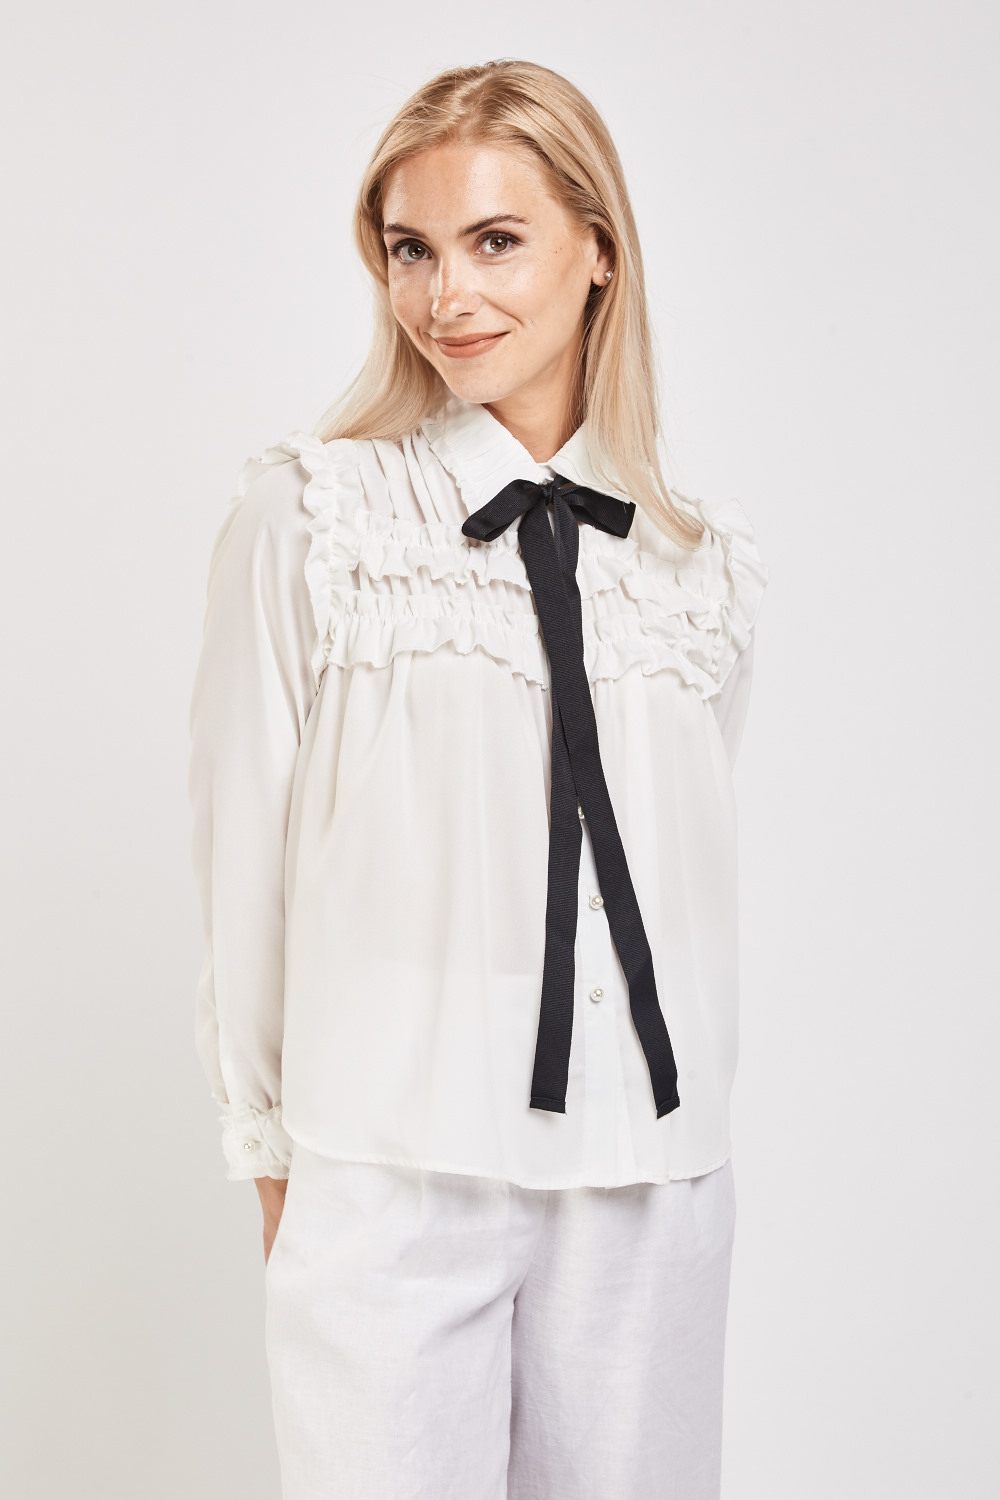 d4020773cd2 Ruffled Tie Up Neck Blouse - Just £5